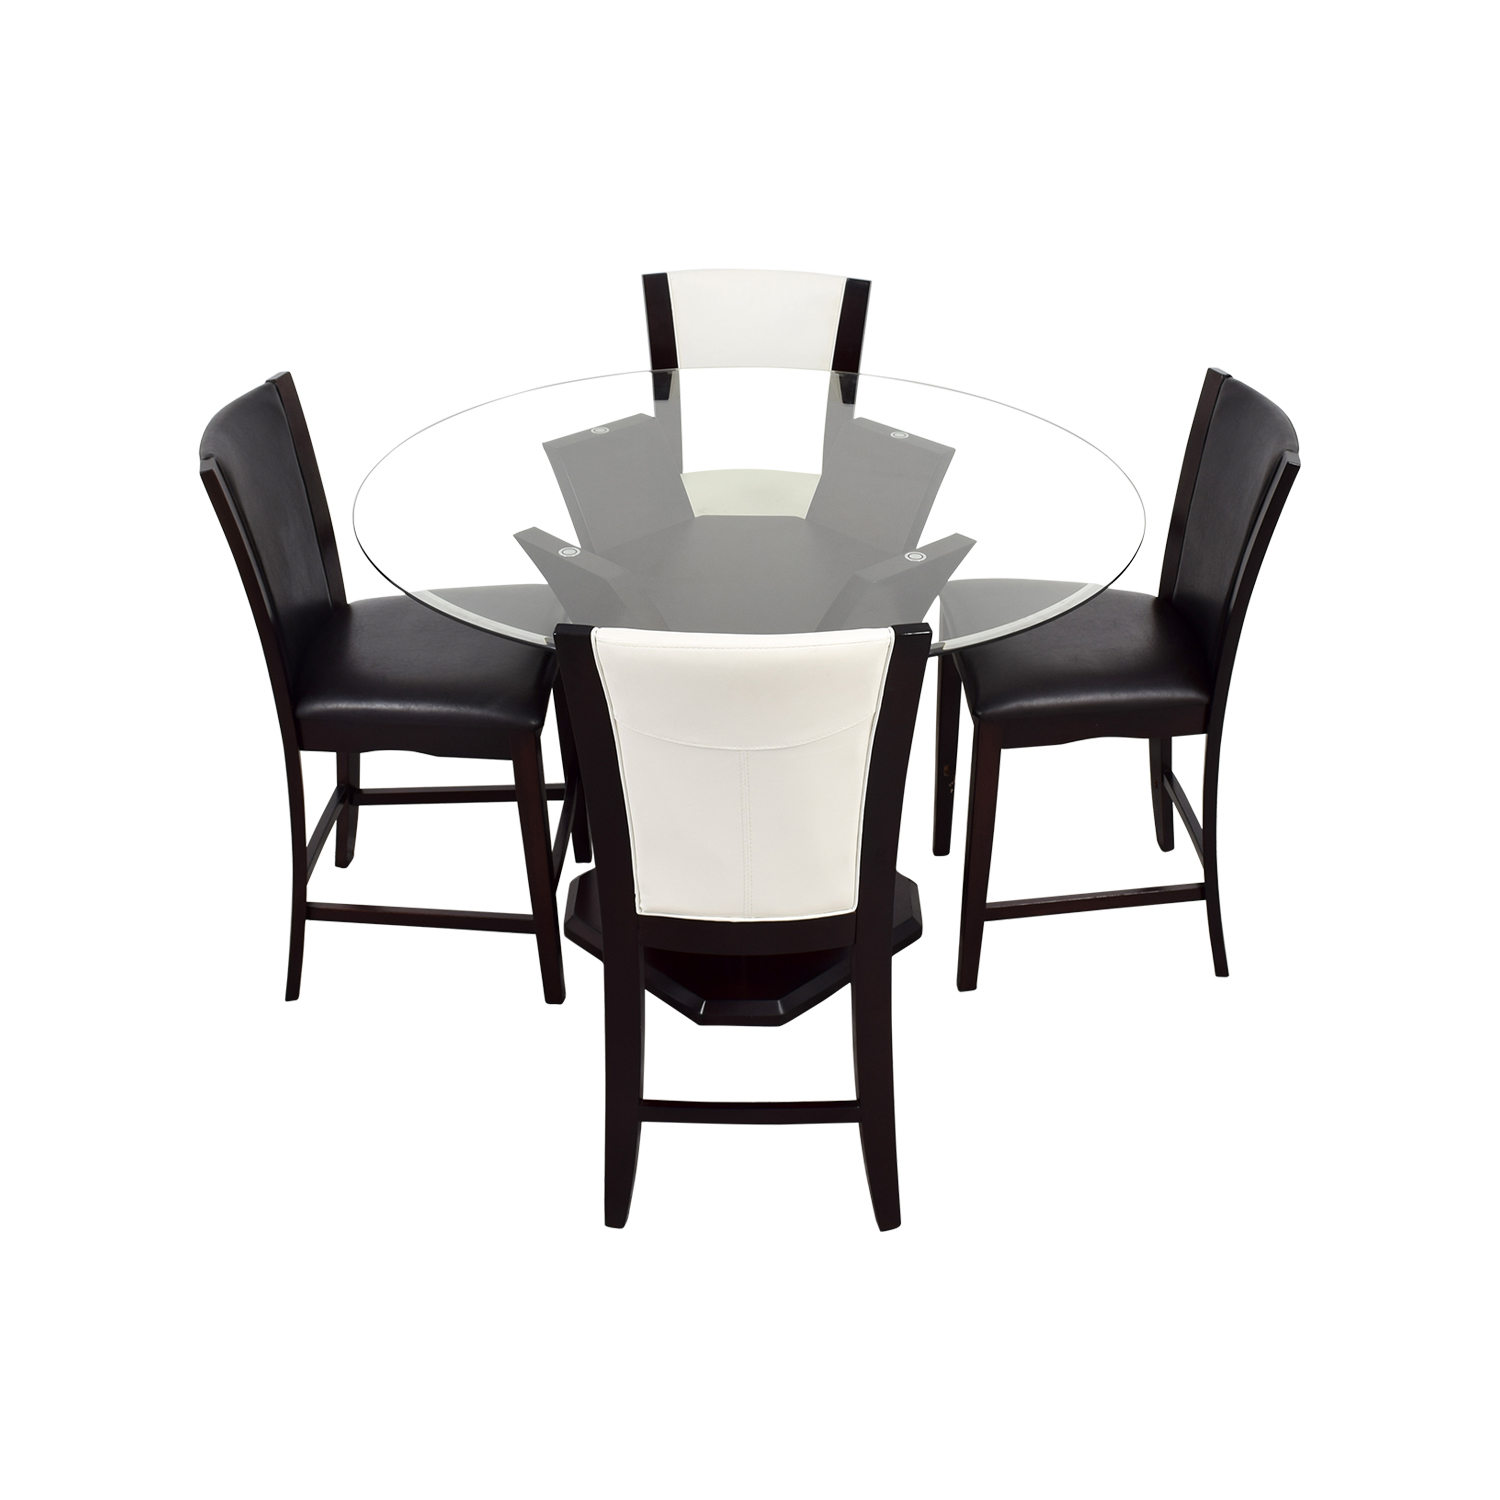 Raymour & Flanigan Raymour & Flanigan Black and White Counter Height Dining Set on sale